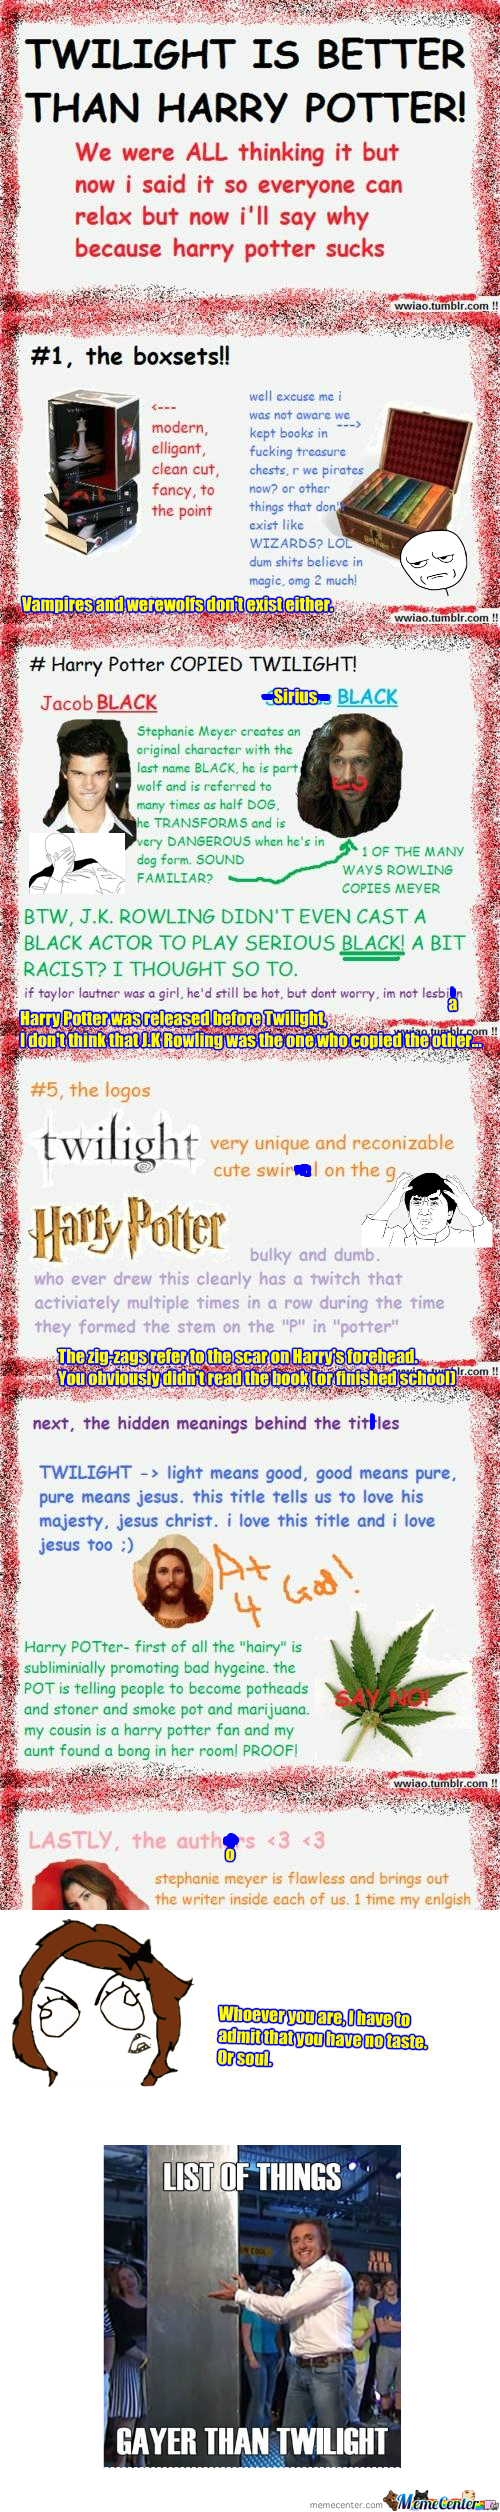 [RMX] To All Twilight Fans...